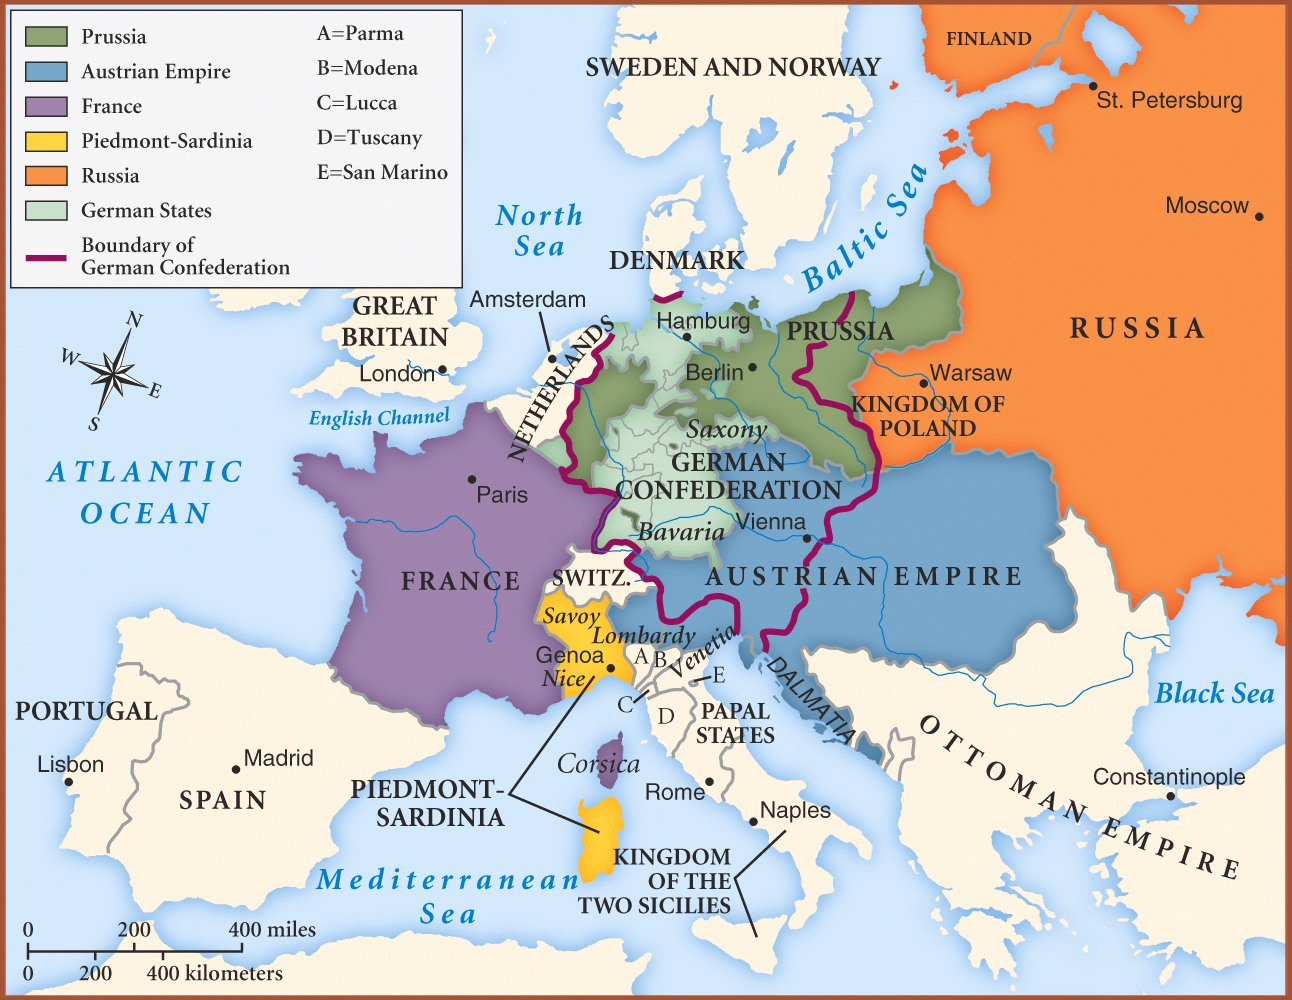 Map of Europe in 1850